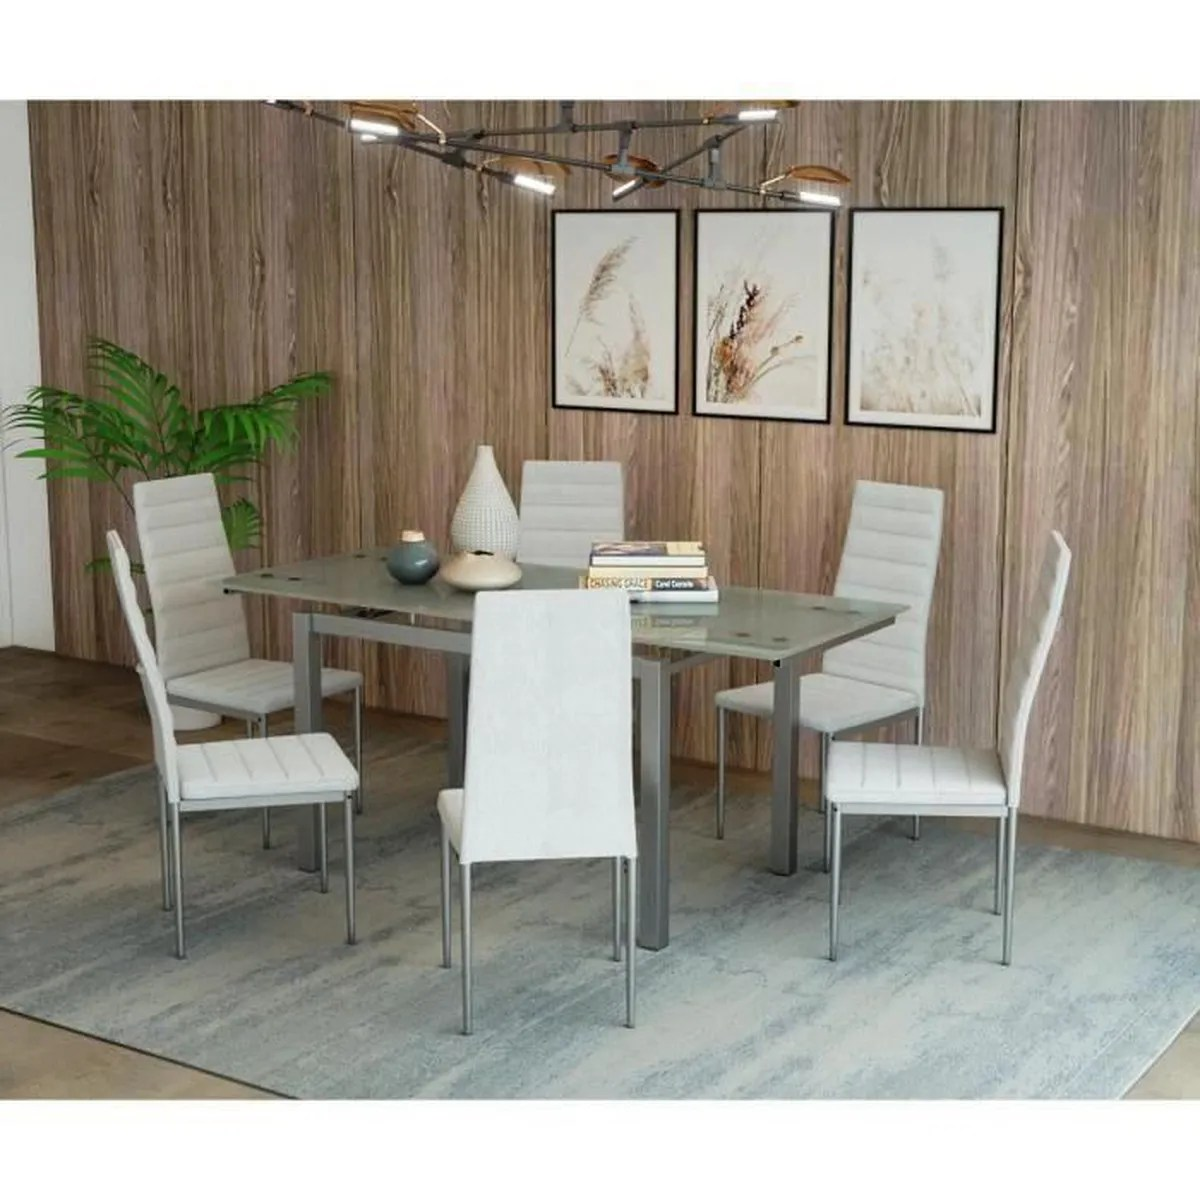 Table Table Avec Avec Chaises Extensible Chaises Extensible Table TPXkZuOwil